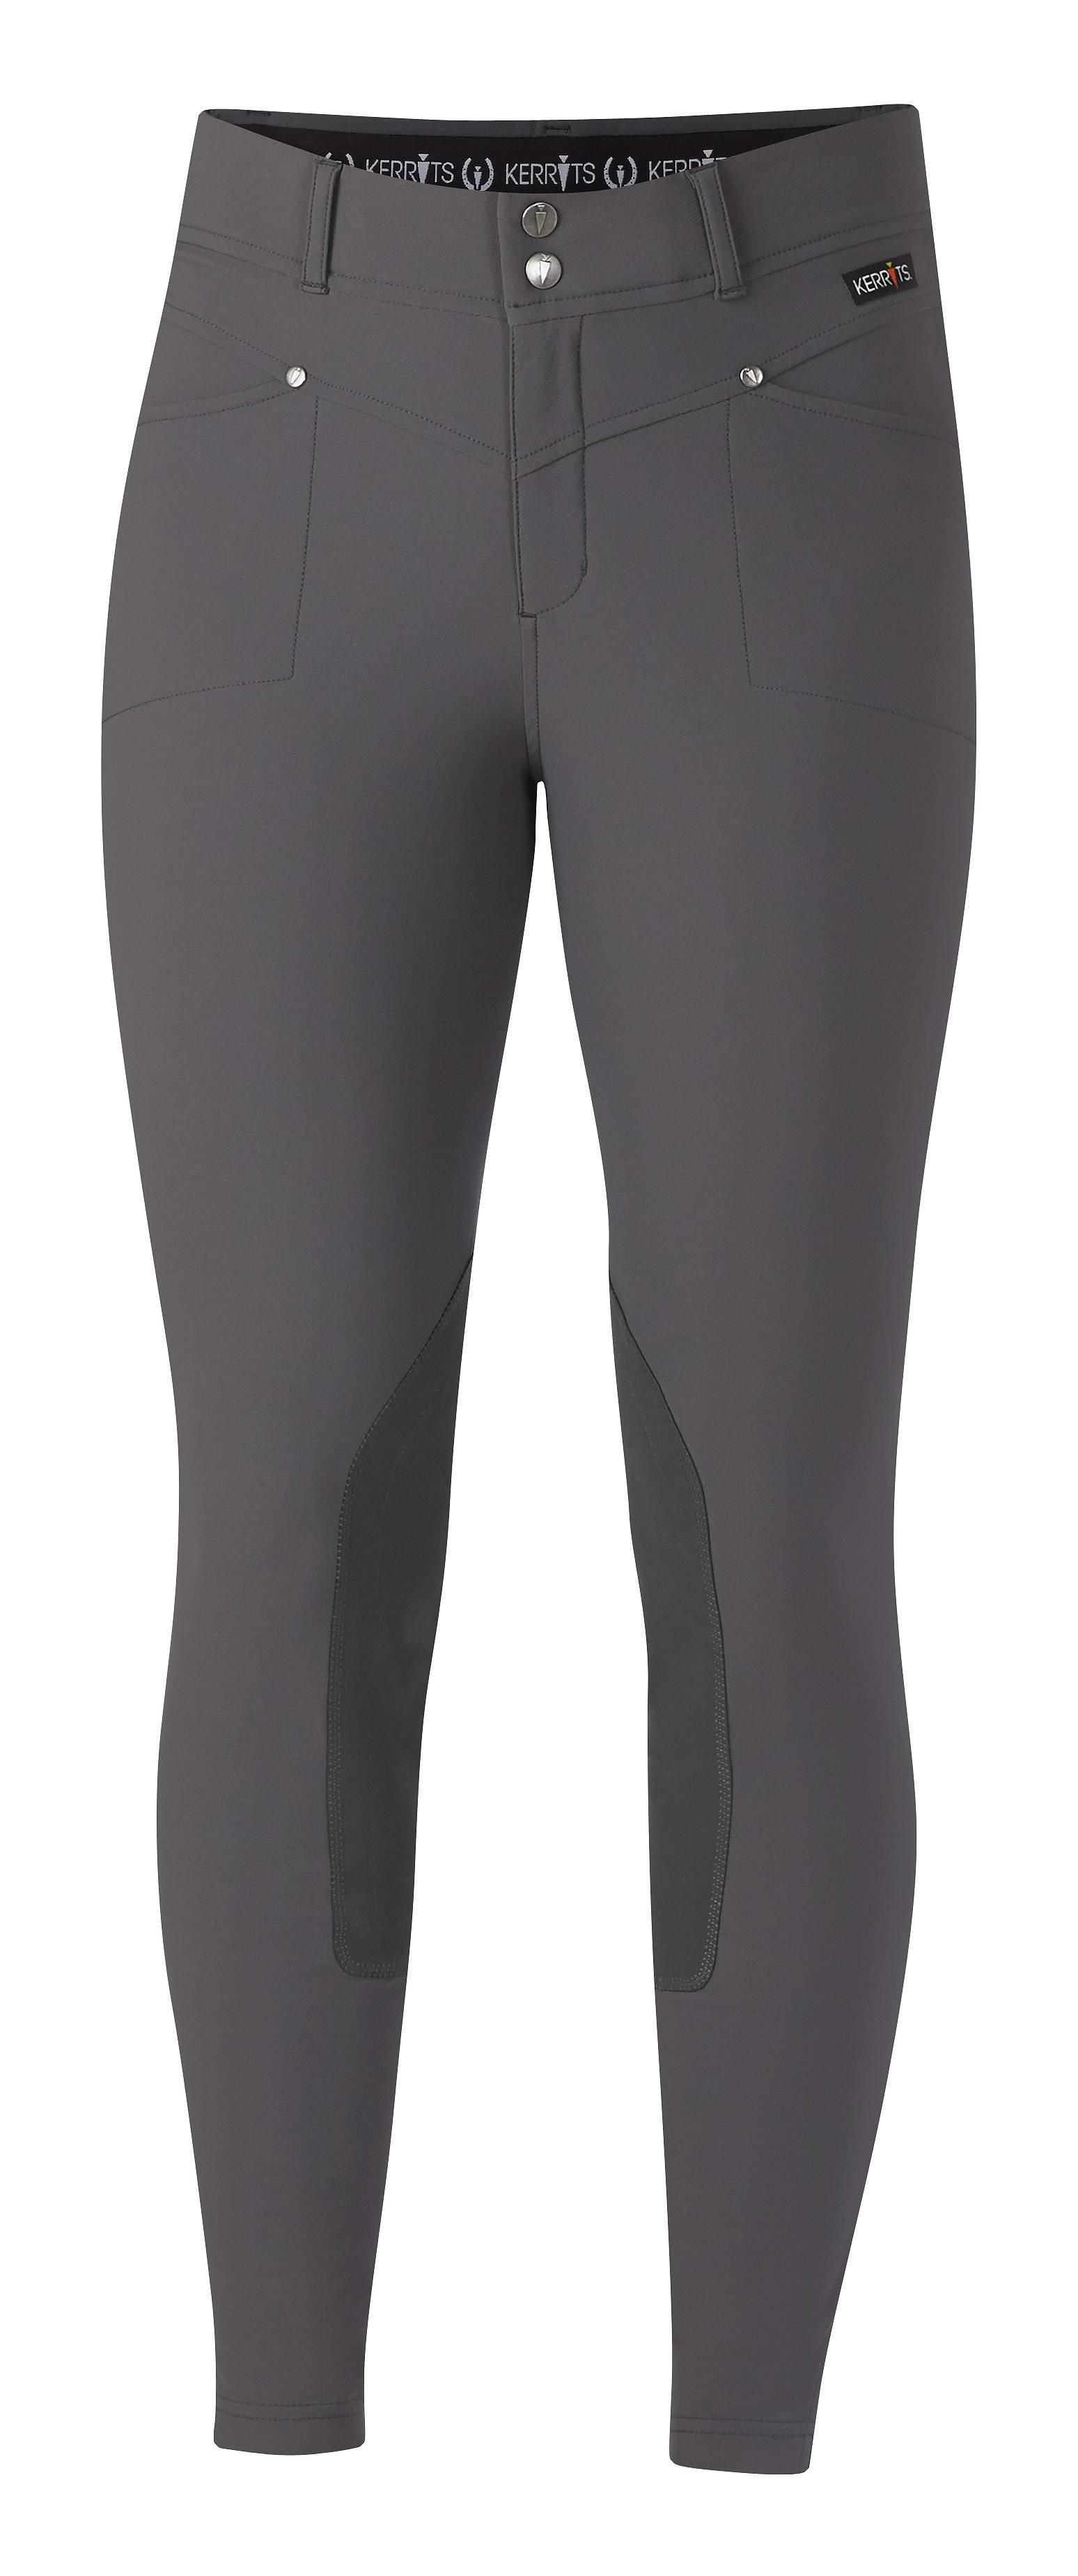 Kerrits Ladies Cross Over Knee Patch Breeches